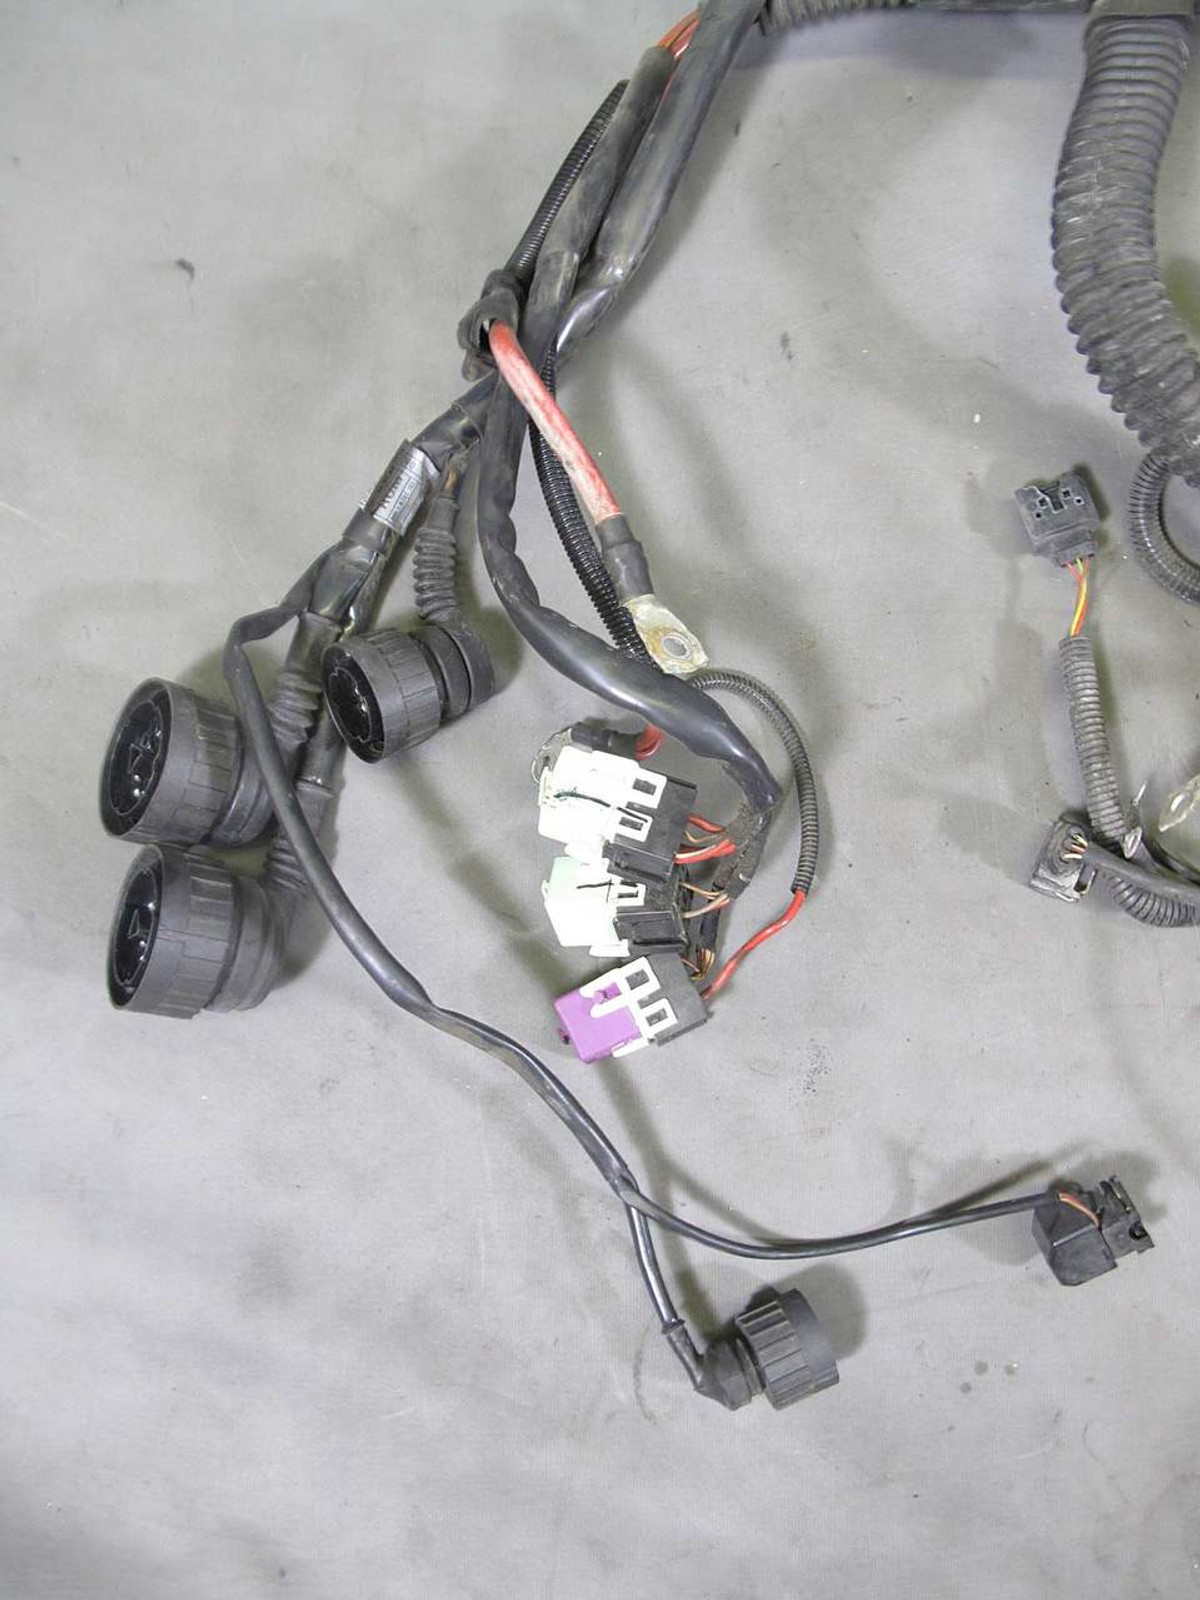 medium resolution of wire harness cover m3 wiring diagram view e30 m3 wiring harness cover wire harness cover m3